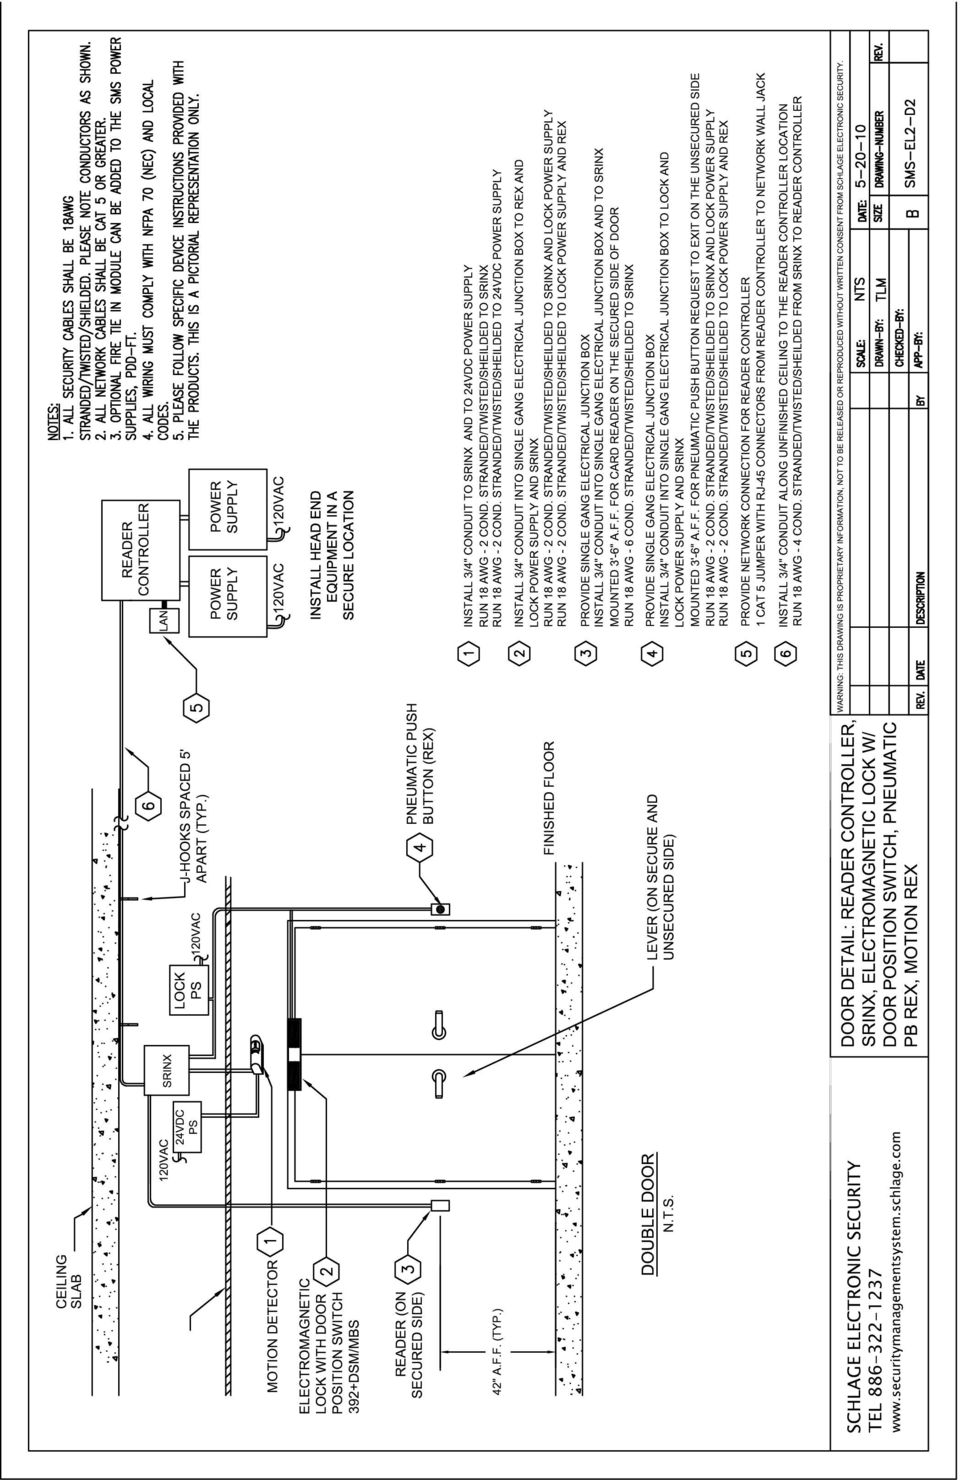 medium resolution of 14 sms wiring portfolio section 3 mortise lock diagrams wiring details for the reader controller and the srinx reader interface diagram page sms ml1 w1